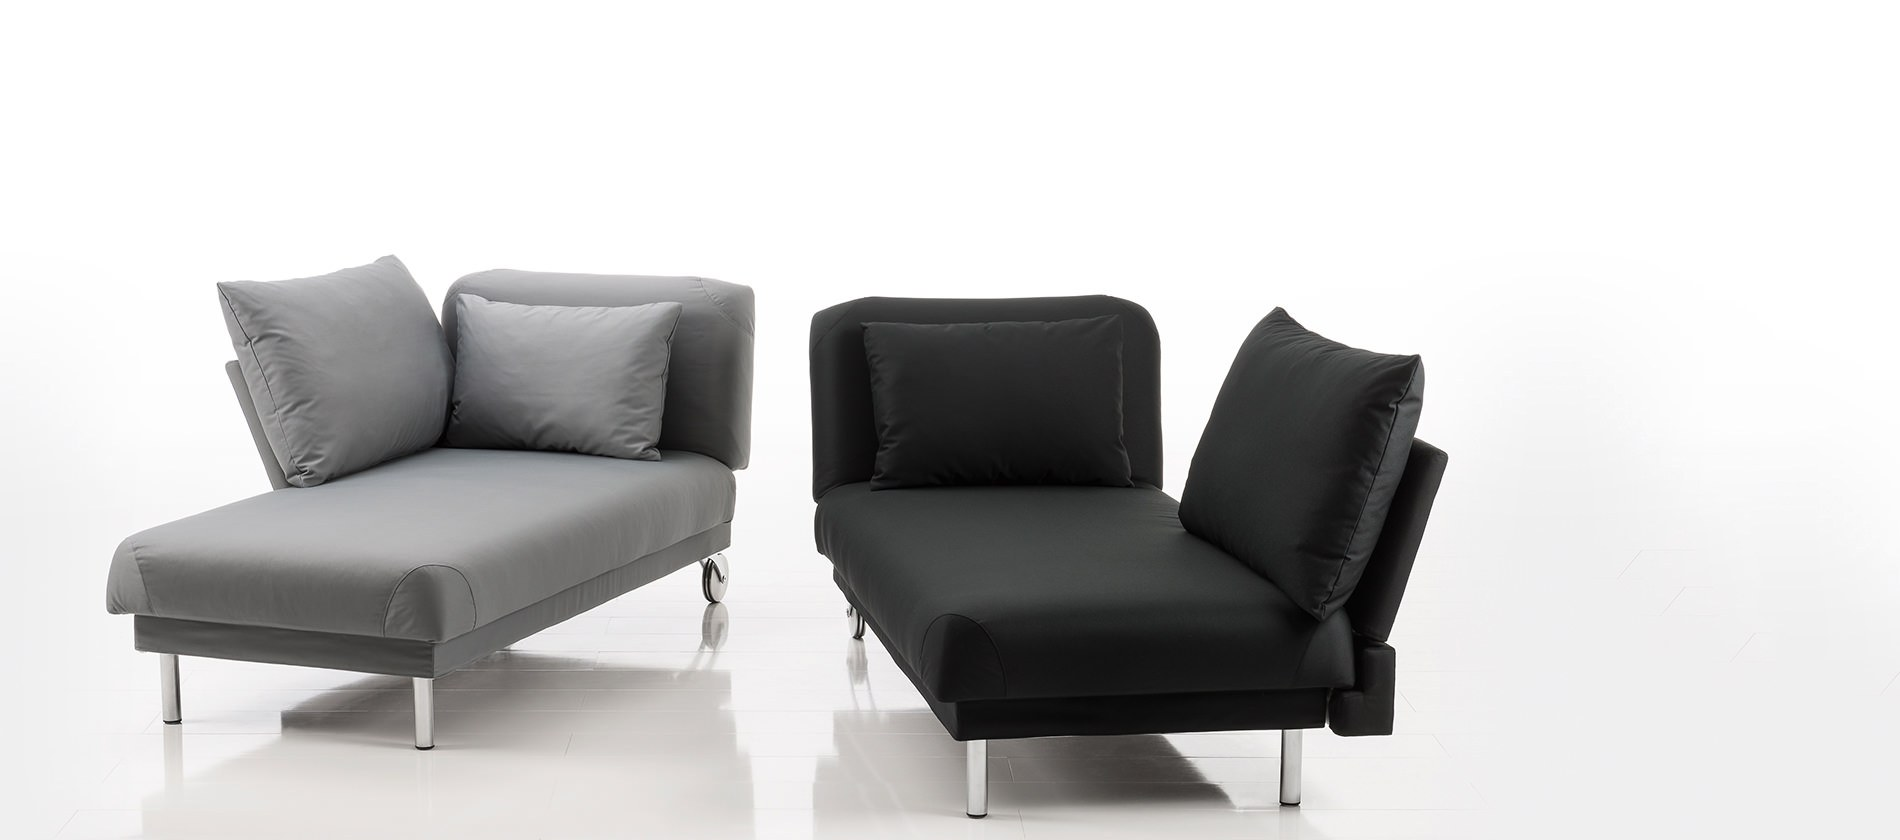 liege tam von br hl daybed jetzt entdecken. Black Bedroom Furniture Sets. Home Design Ideas